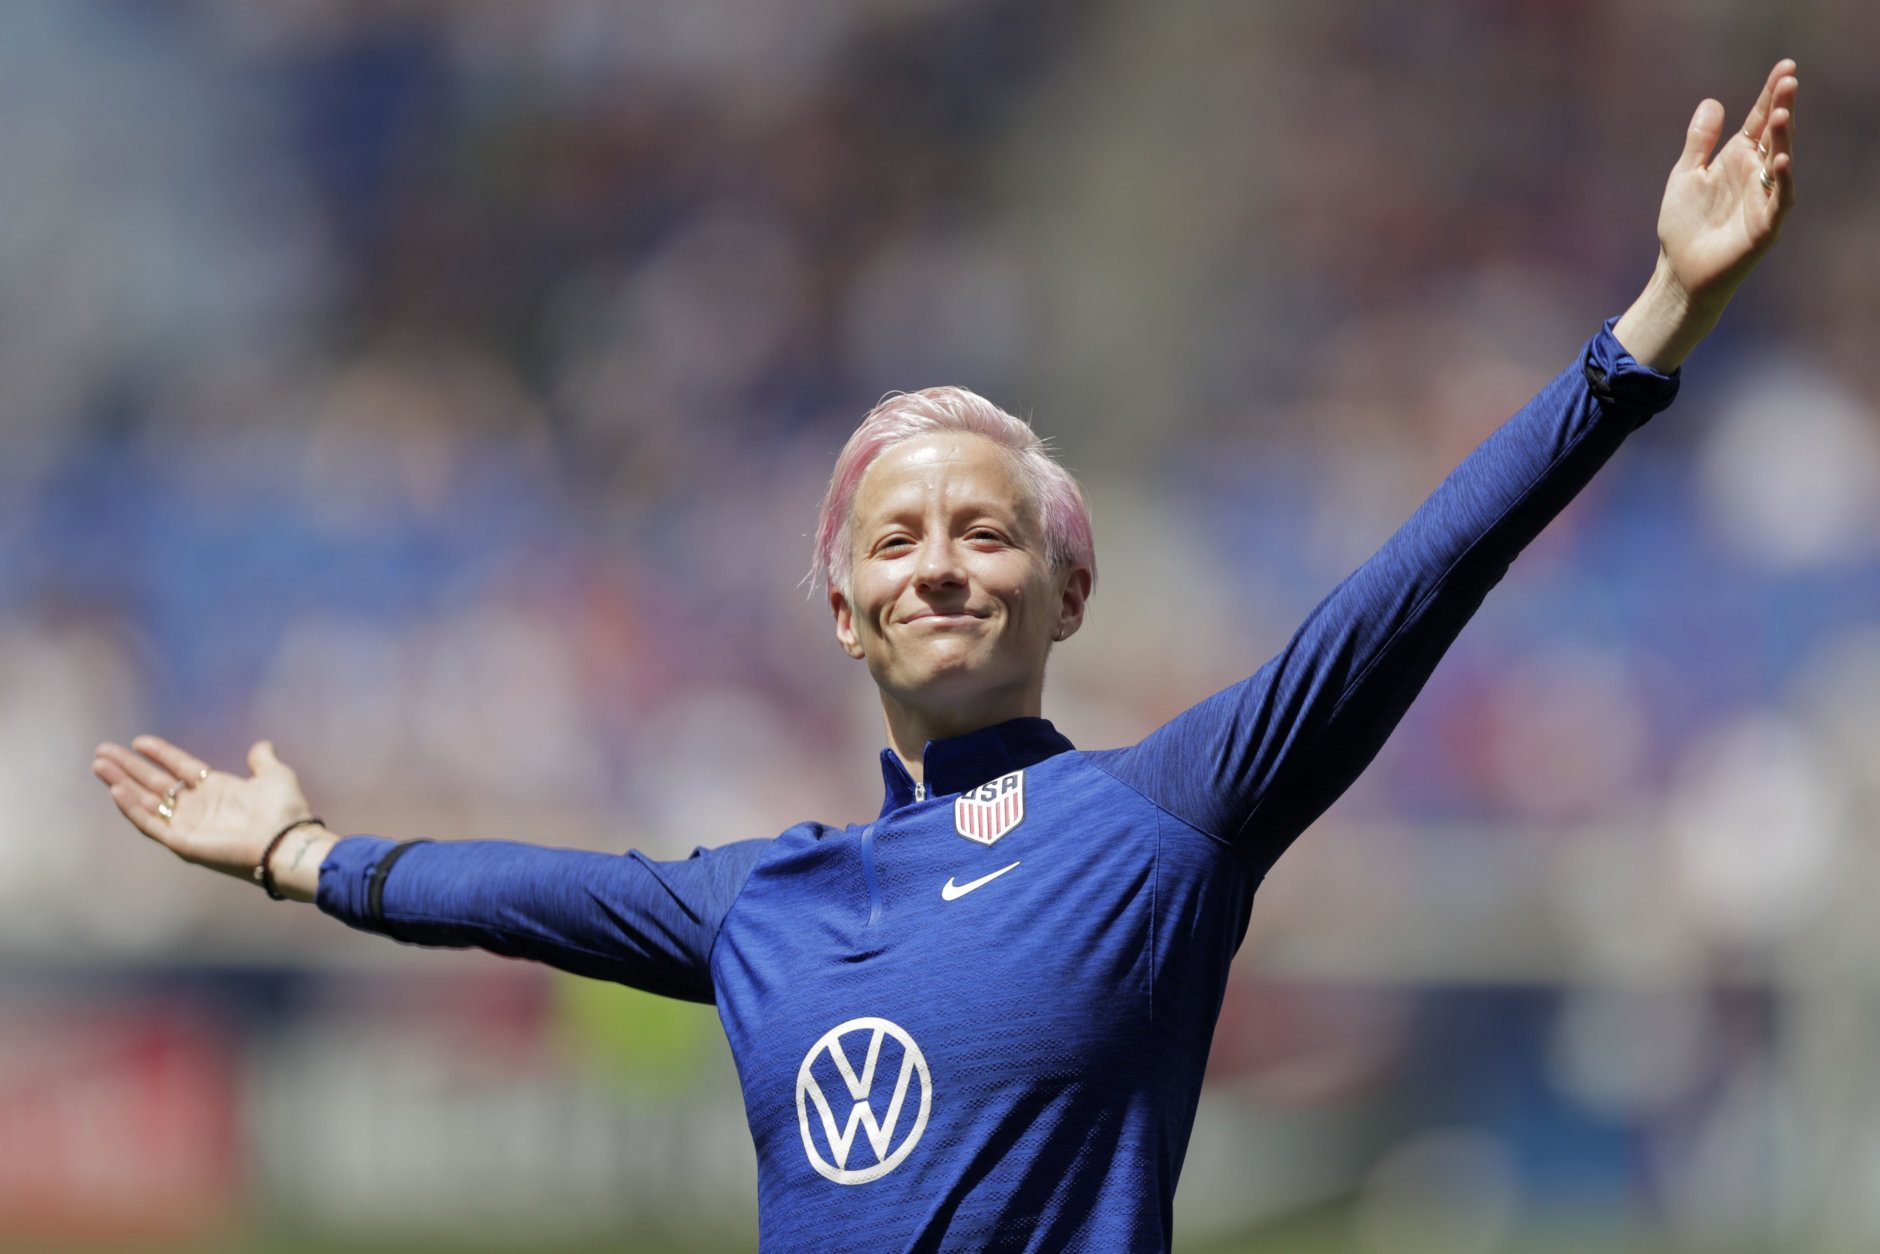 Megan Rapinoe, a forward for the United States women's national team, which is headed to the FIFA Women's World Cup, is introduced for fans during a send-off ceremony following an international friendly soccer match against Mexico, Sunday, May 26, 2019, in Harrison, N.J. The U.S. won 3-0. (AP Photo/Julio Cortez)